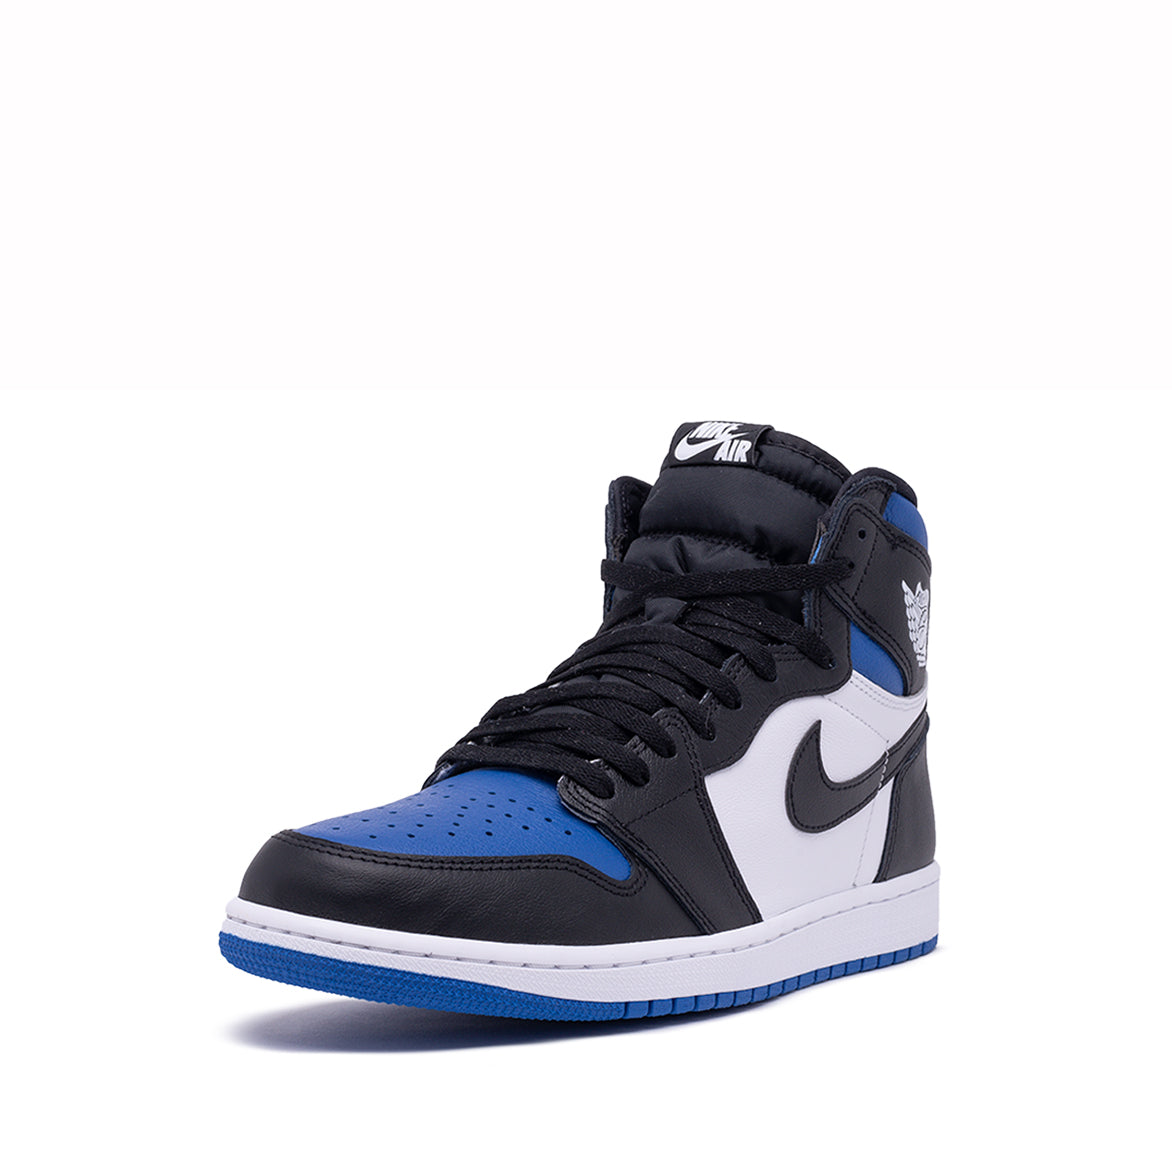 "AIR JORDAN 1 RETRO HIGH OG (GS) ""ROYAL TOE"""